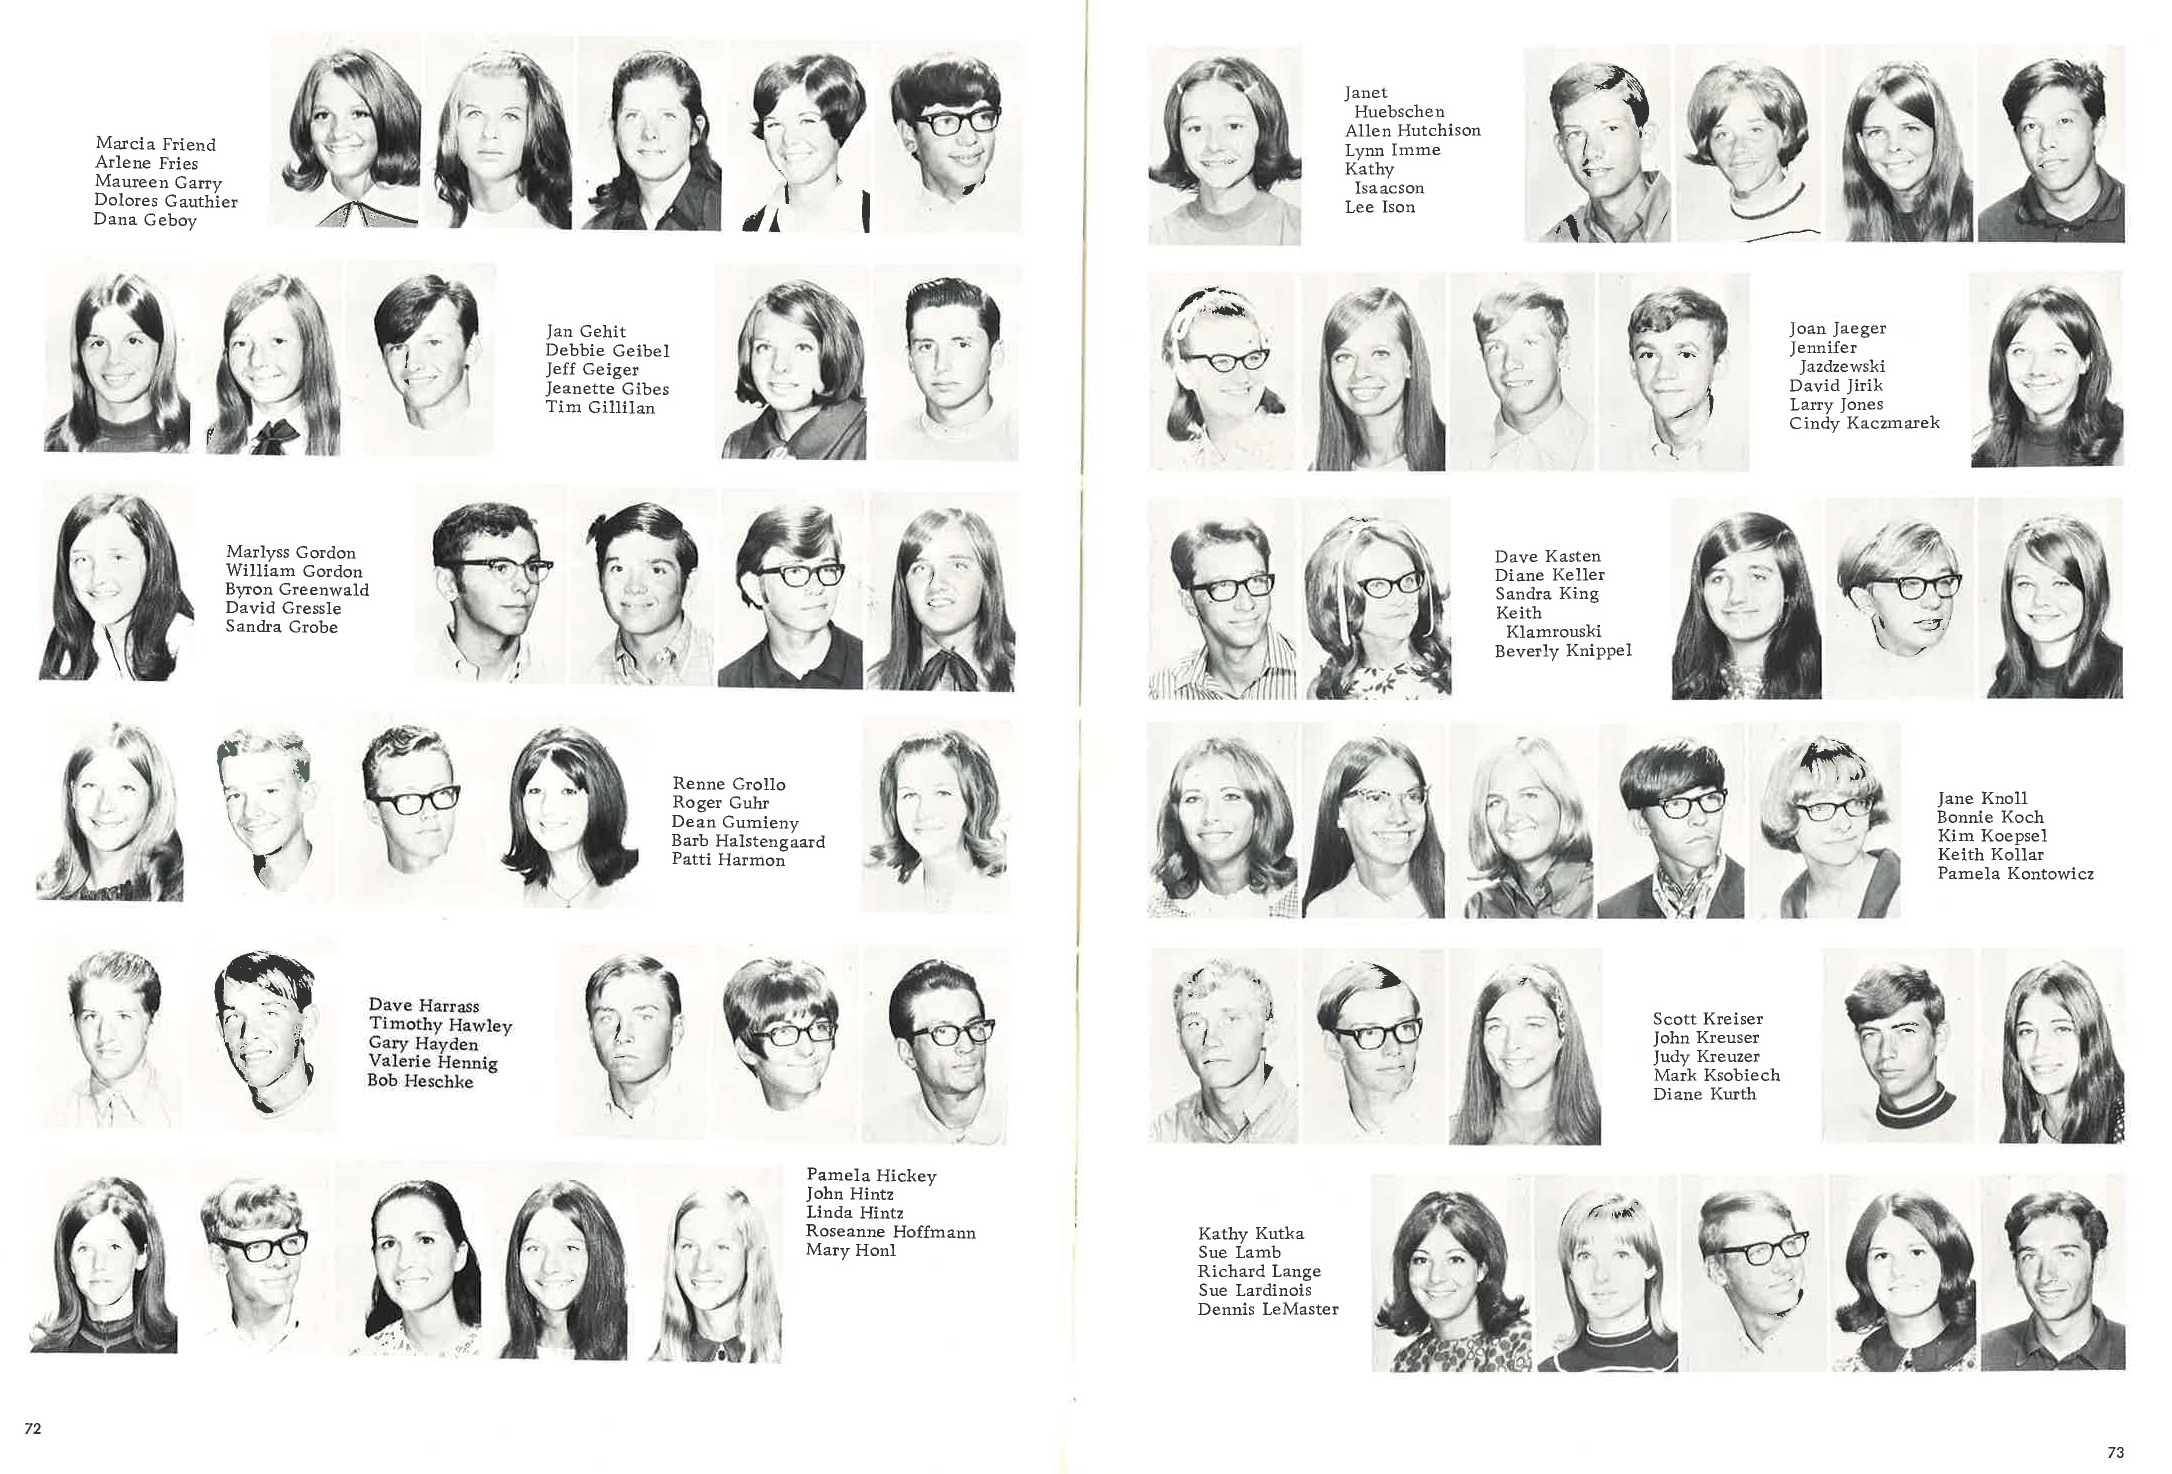 1970_Yearbook_72-73.jpg